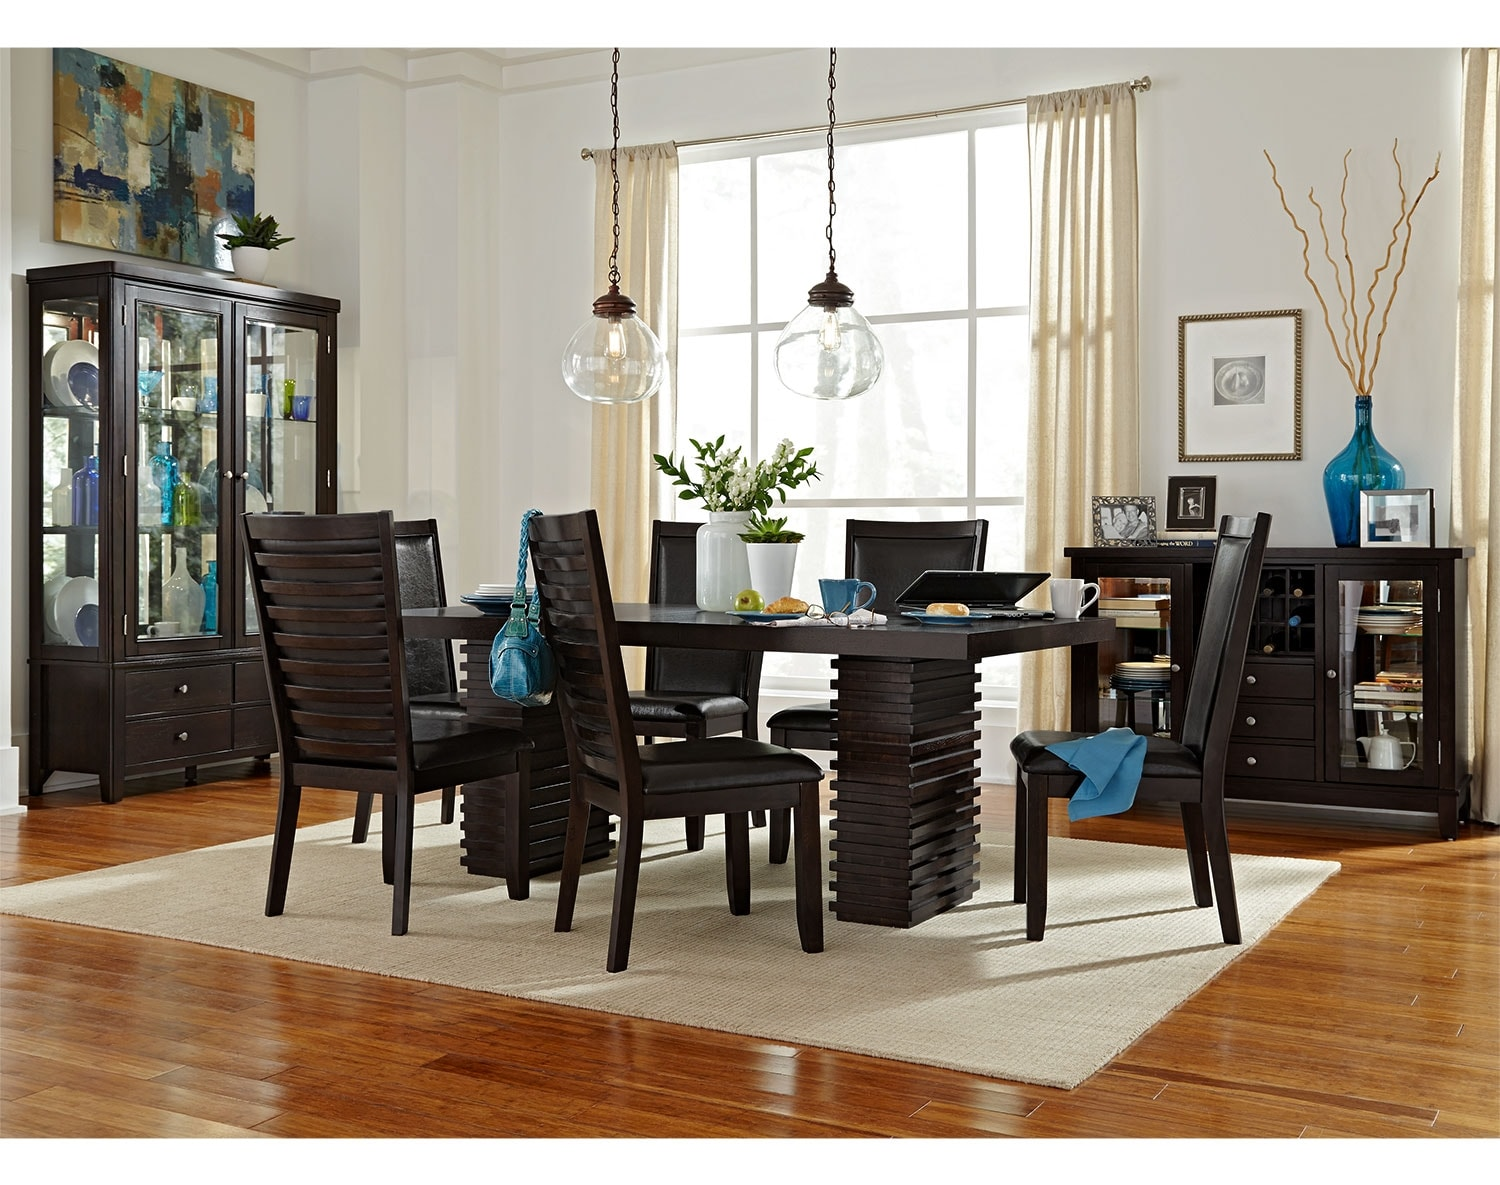 Dining Room Furniture - The Costa Brown Collection - Table